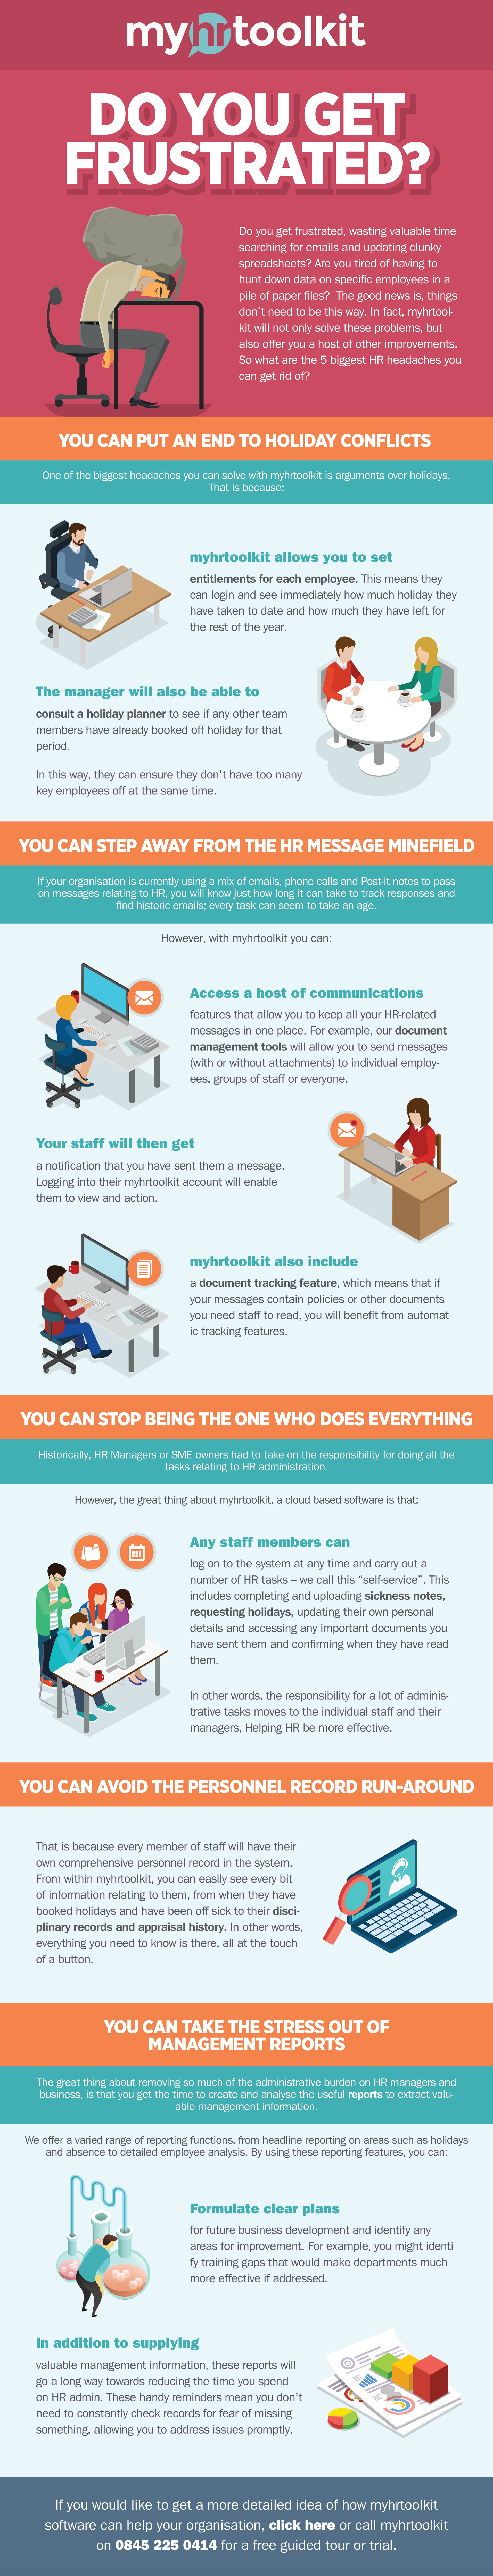 Pin By Myhrtoolkit On Office Hr Business Infographic